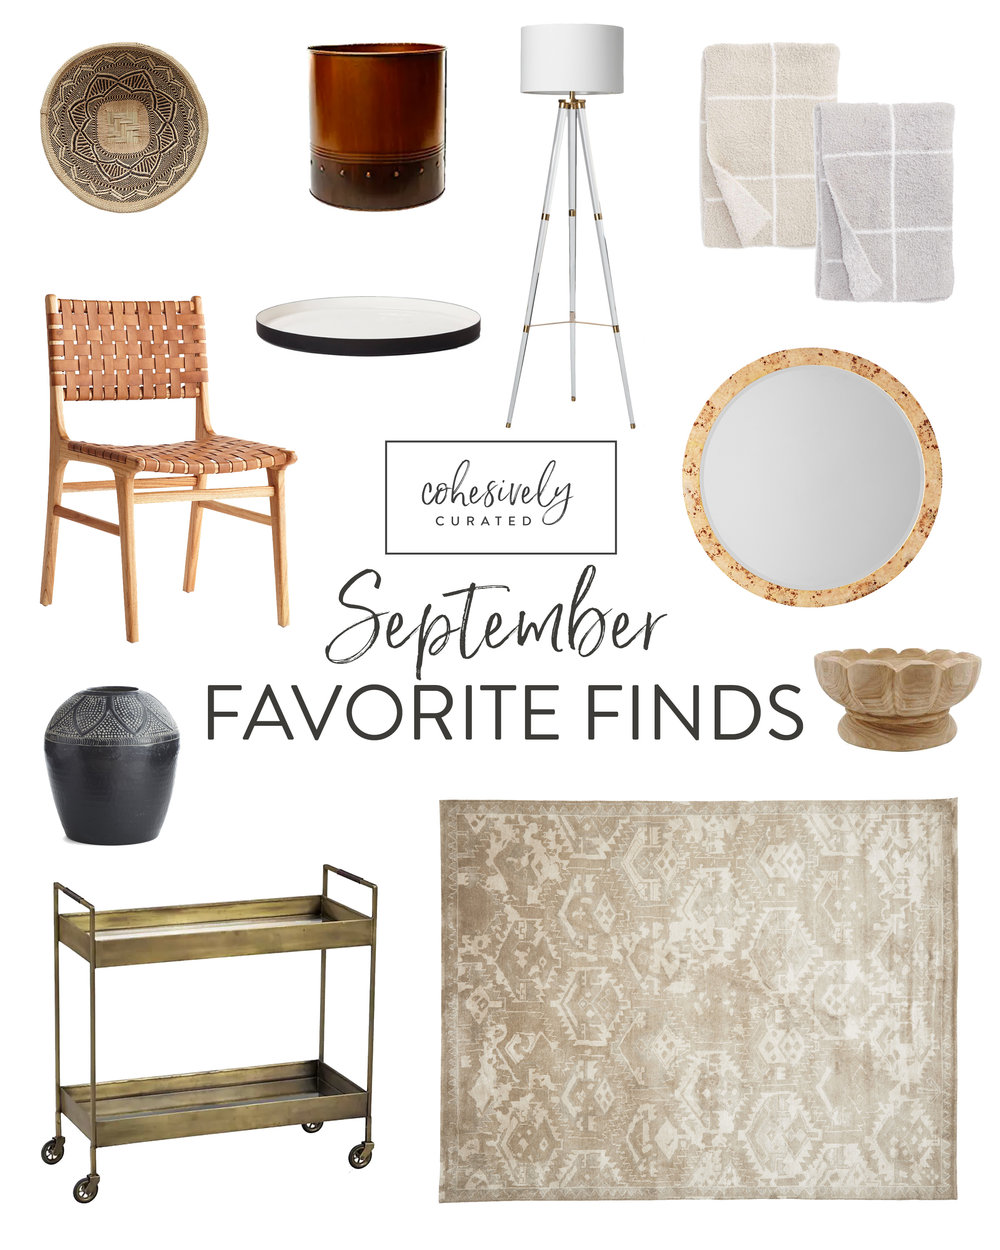 September Favorite Finds